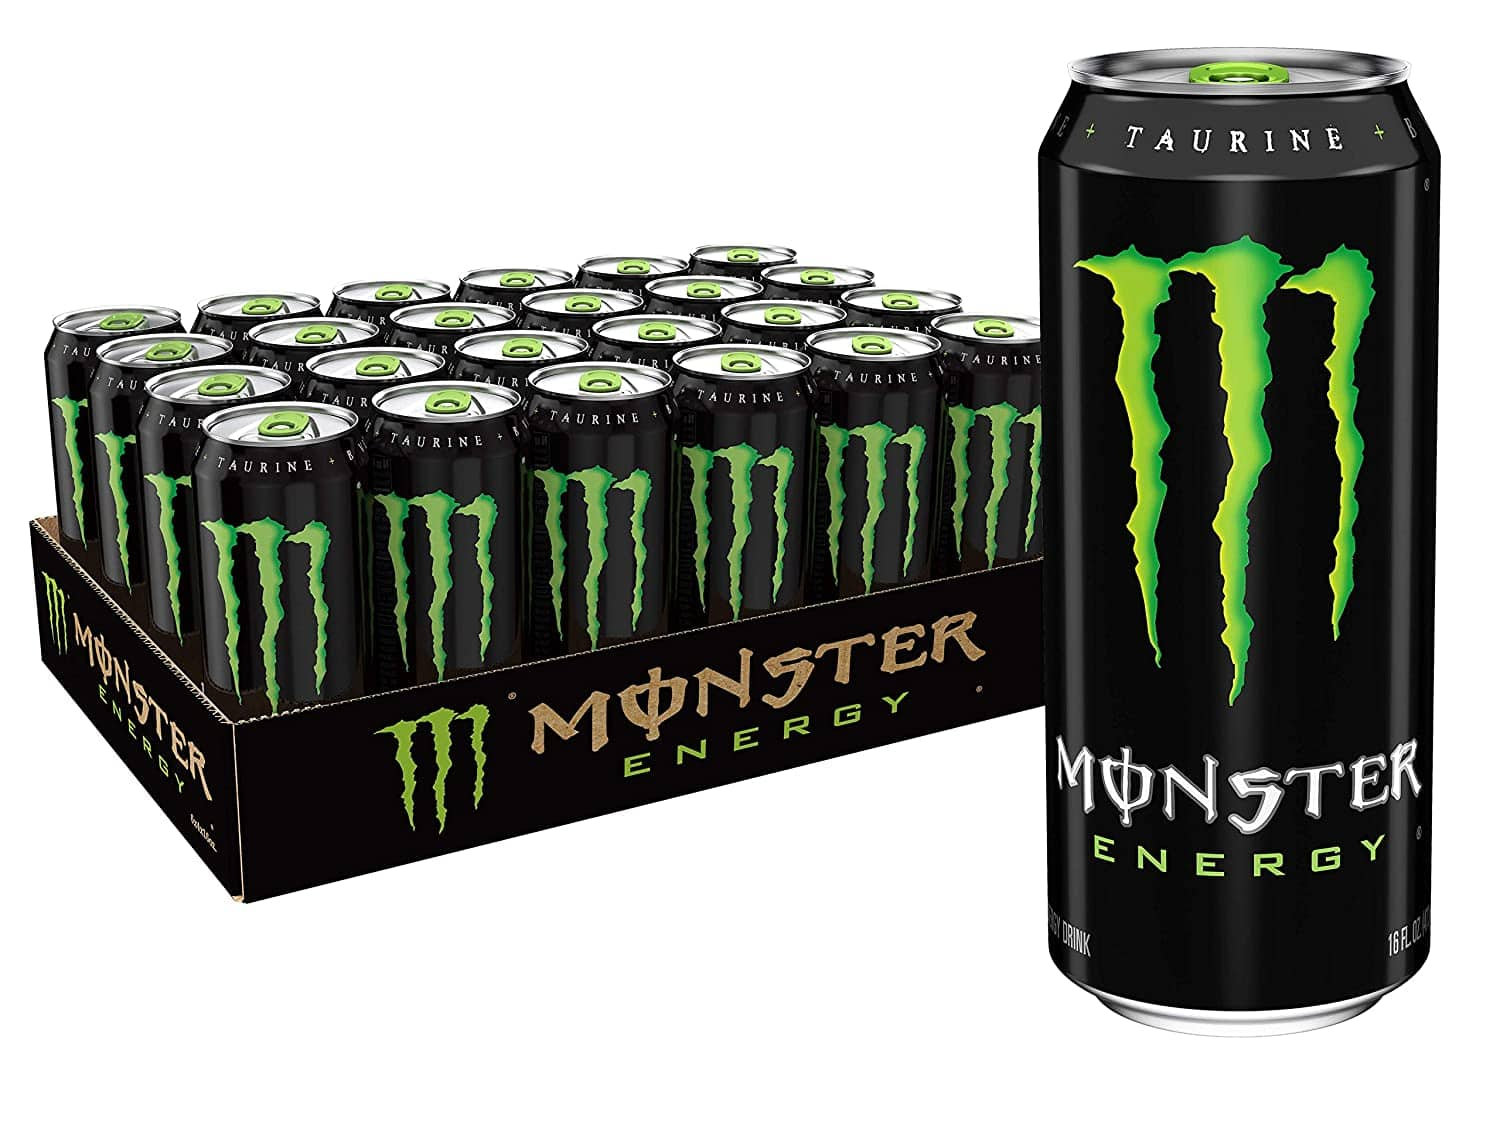 Monster Energy Drink, Green, Original, 16 Ounce (Pack of 24) $25.32